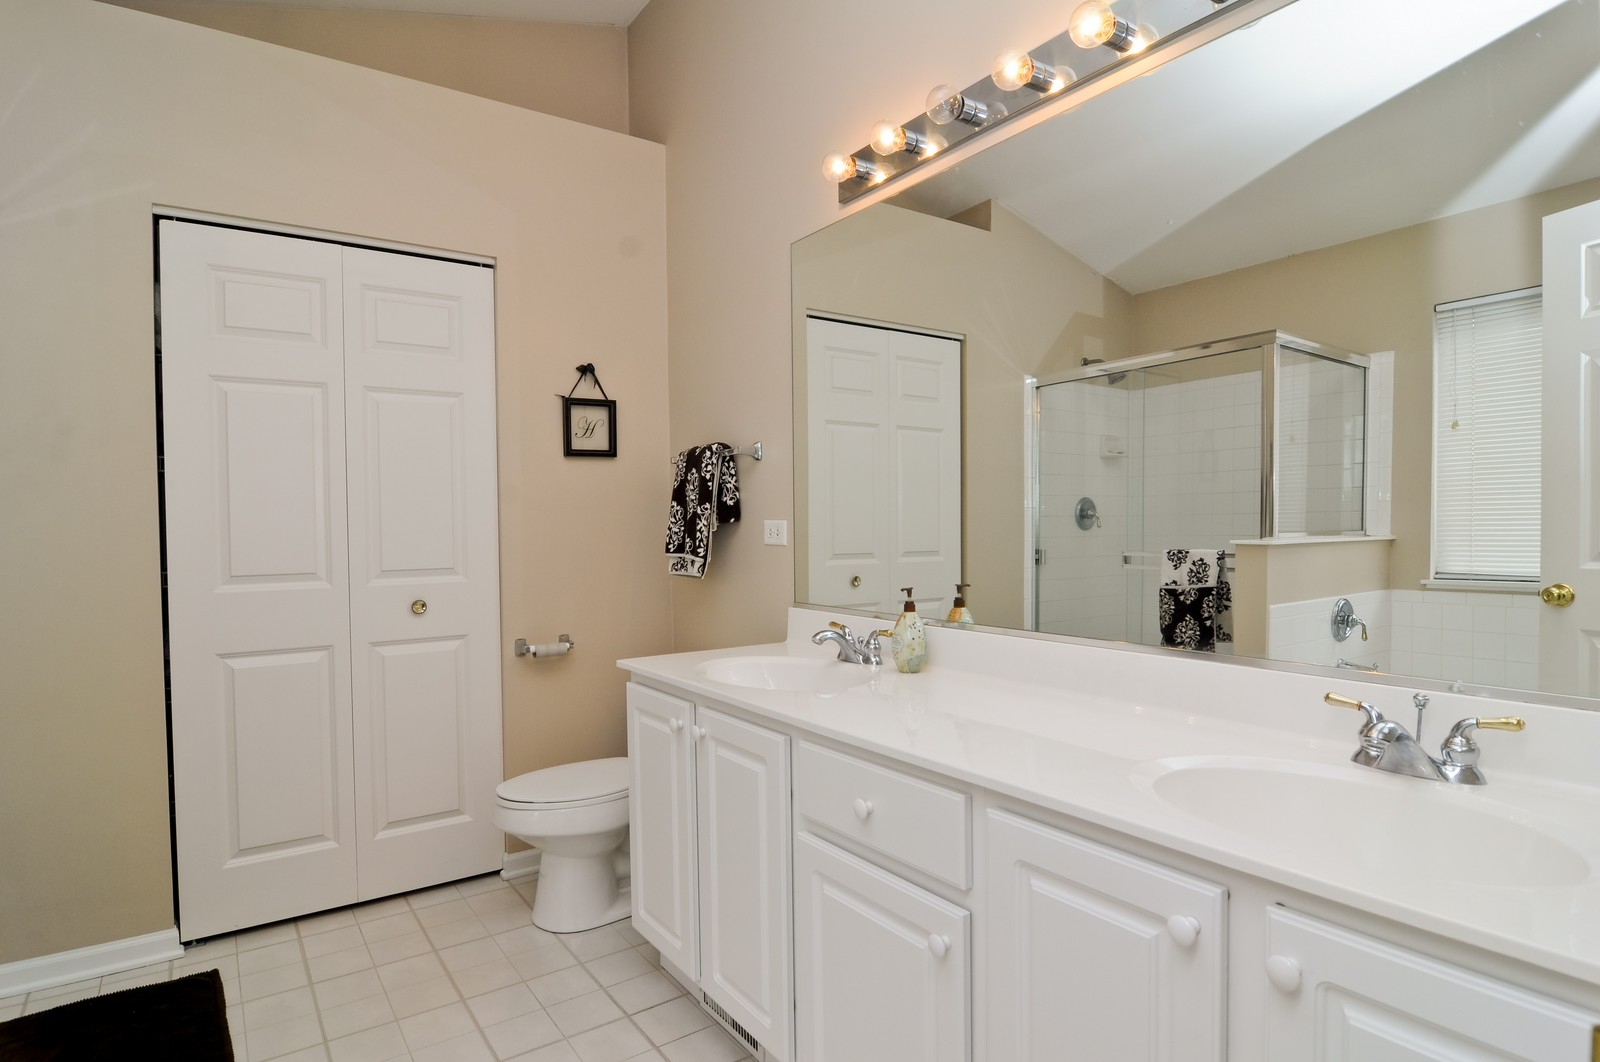 Real Estate Photography - 3461 Chadwick Lane, Lake in the Hills, IL, 60156 - Master Bathroom